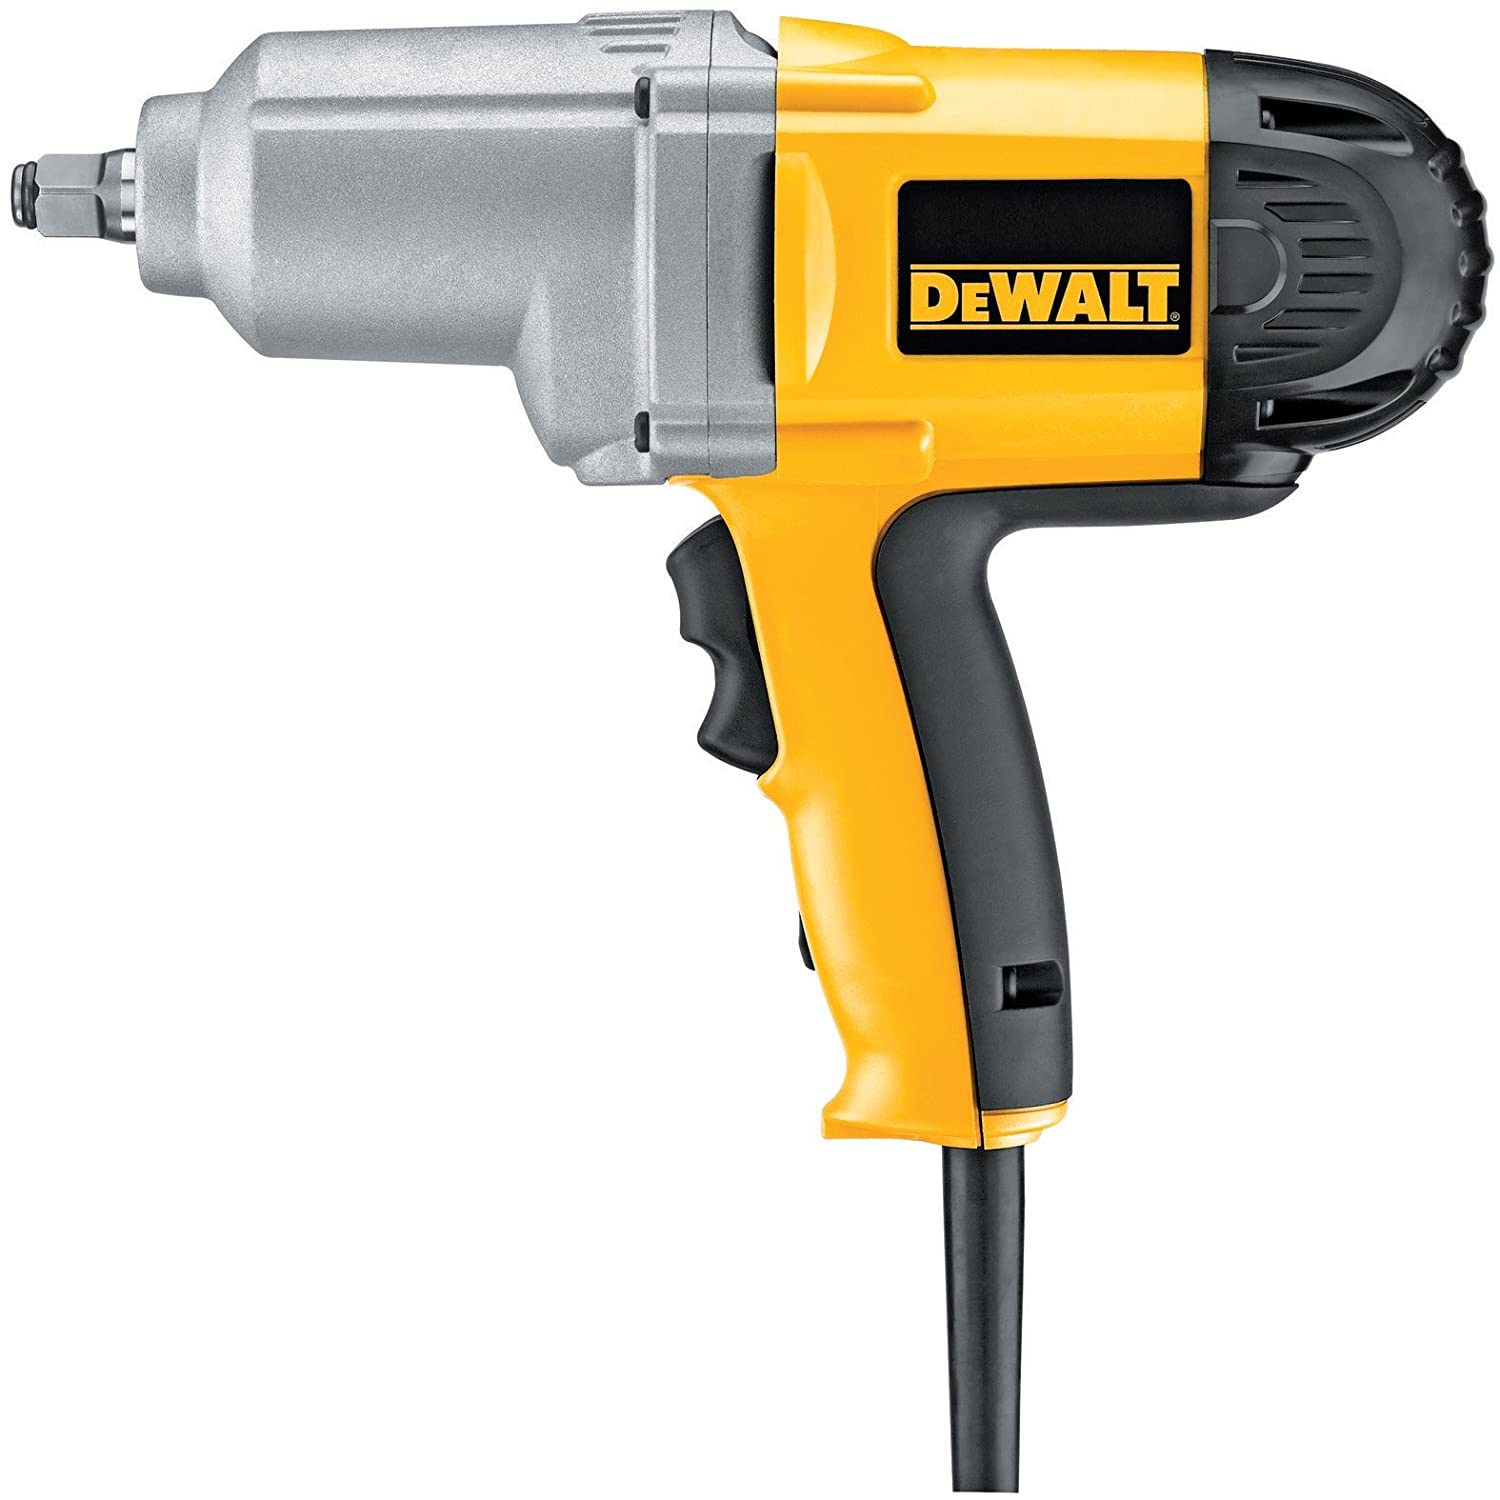 DEWALT DW293 7.5-Amp 1/2-Inch Impact Wrench with Hog Ring Anvil